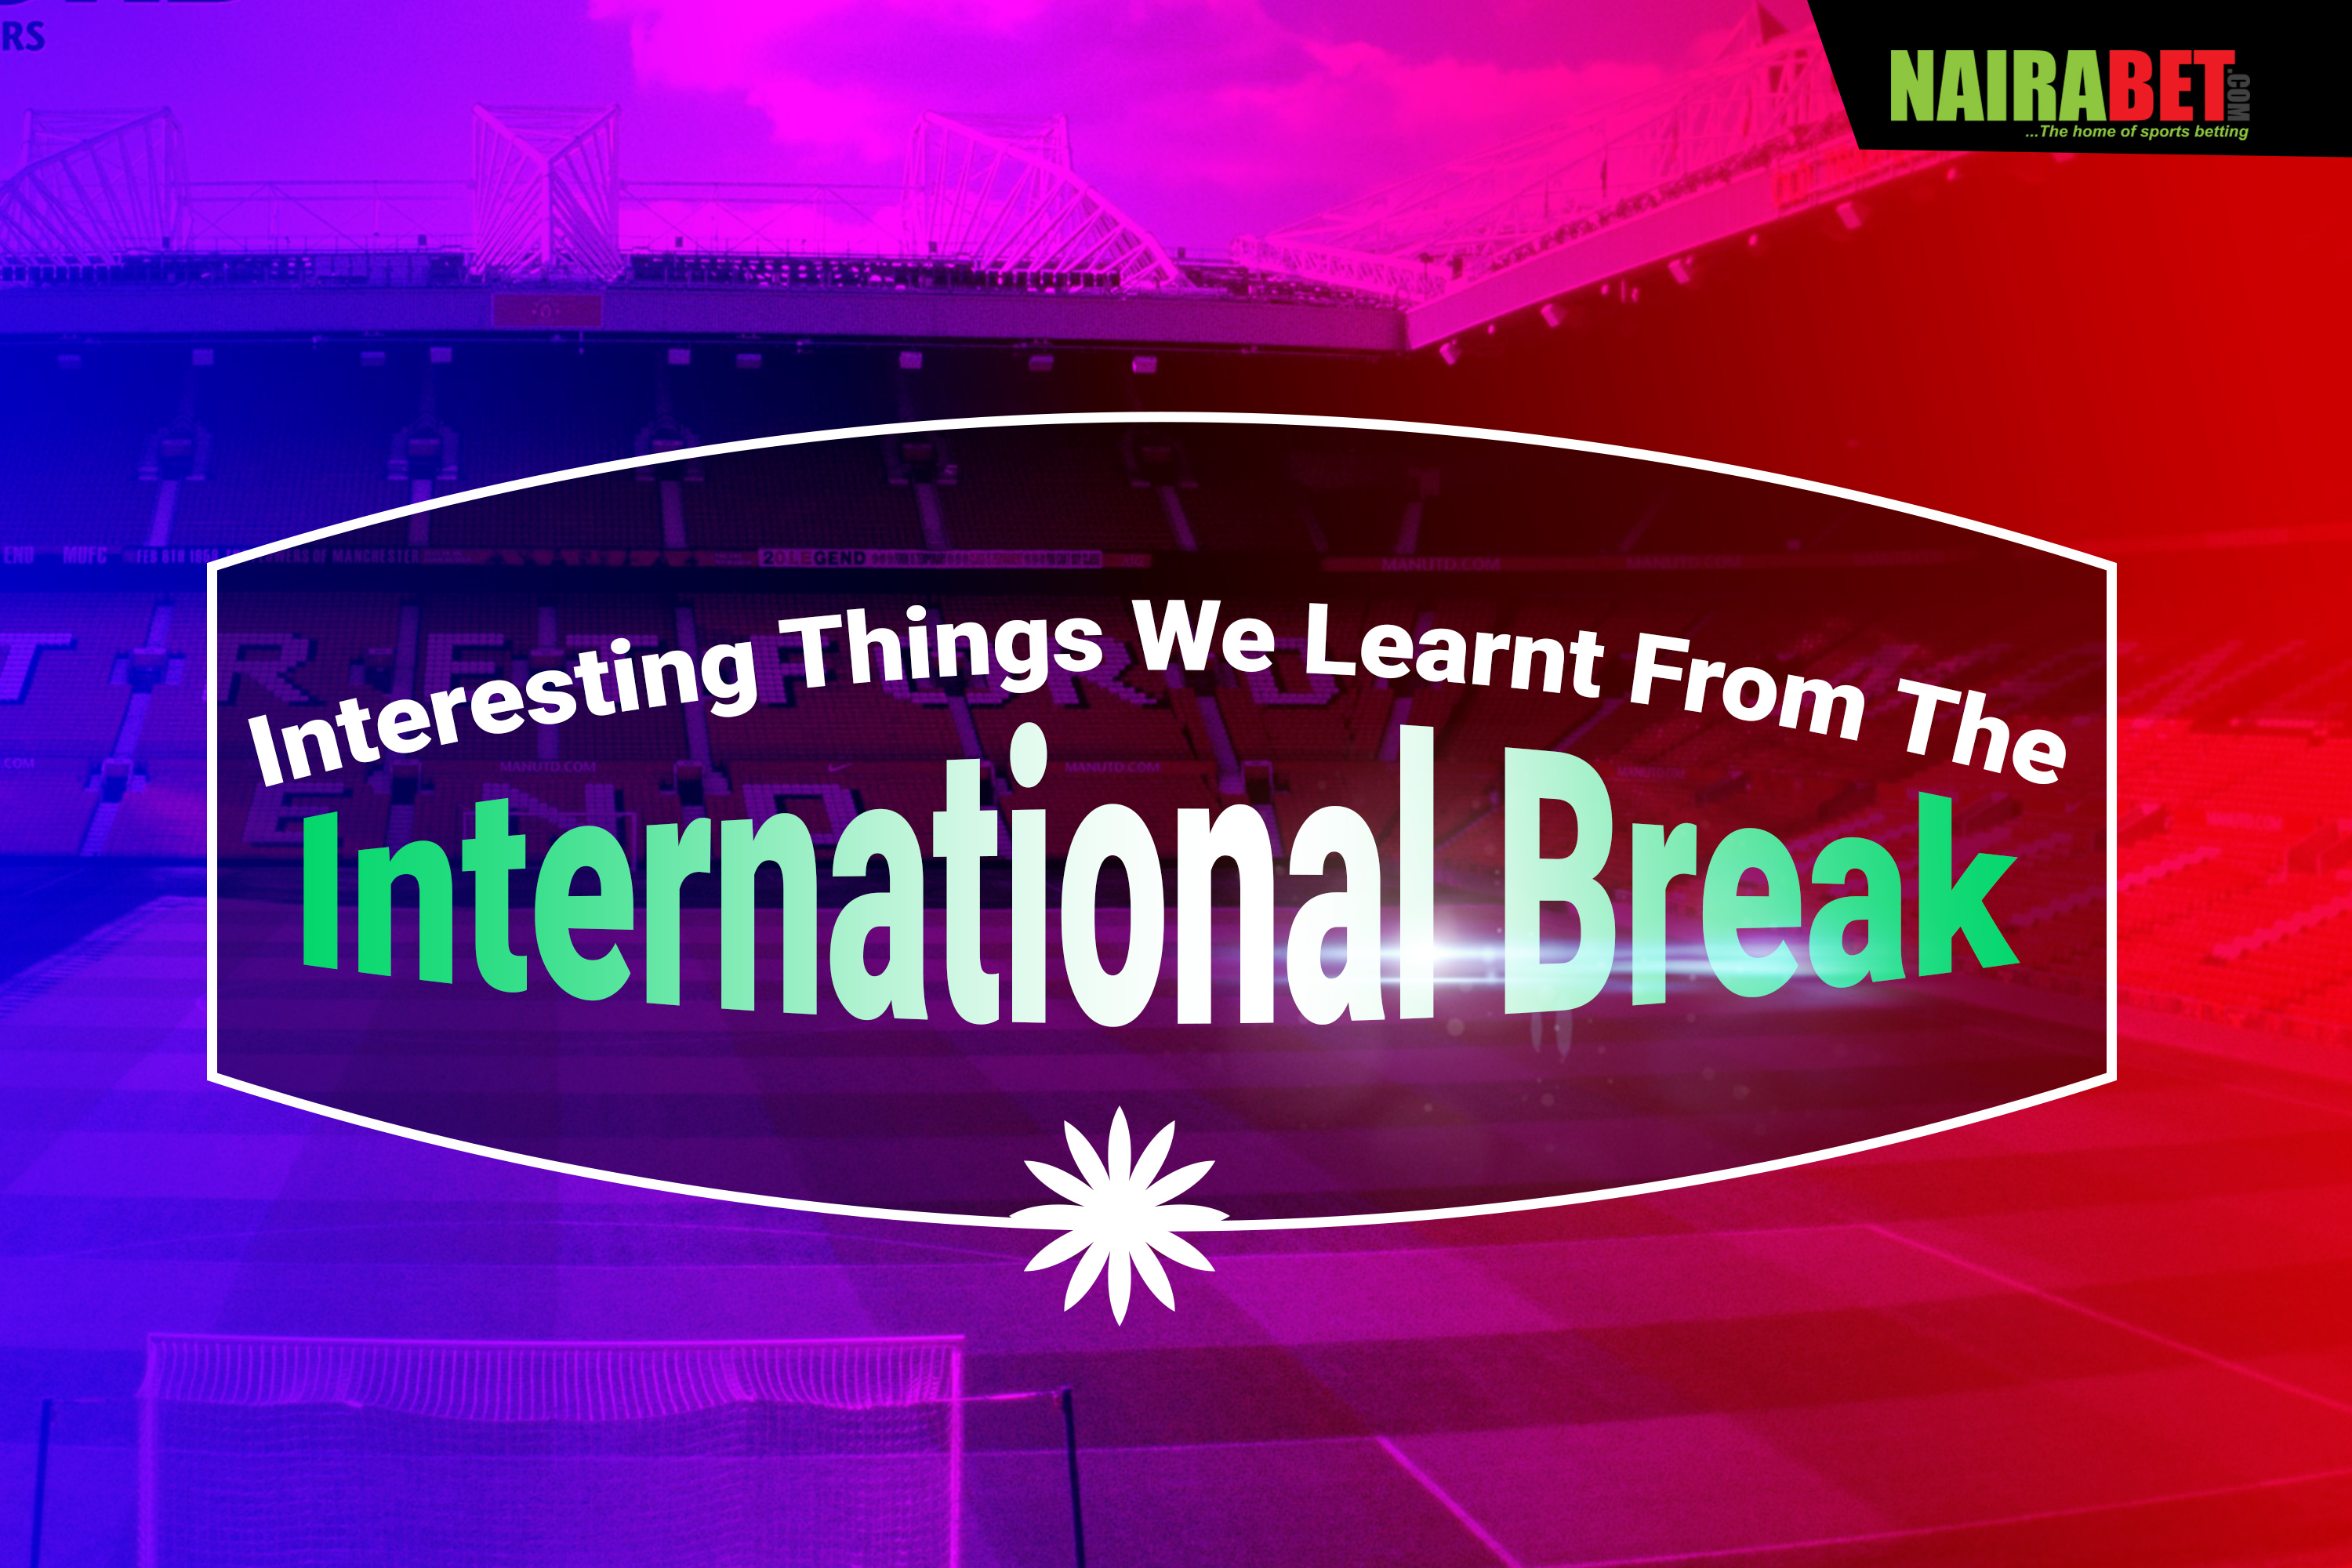 3 international break lessons